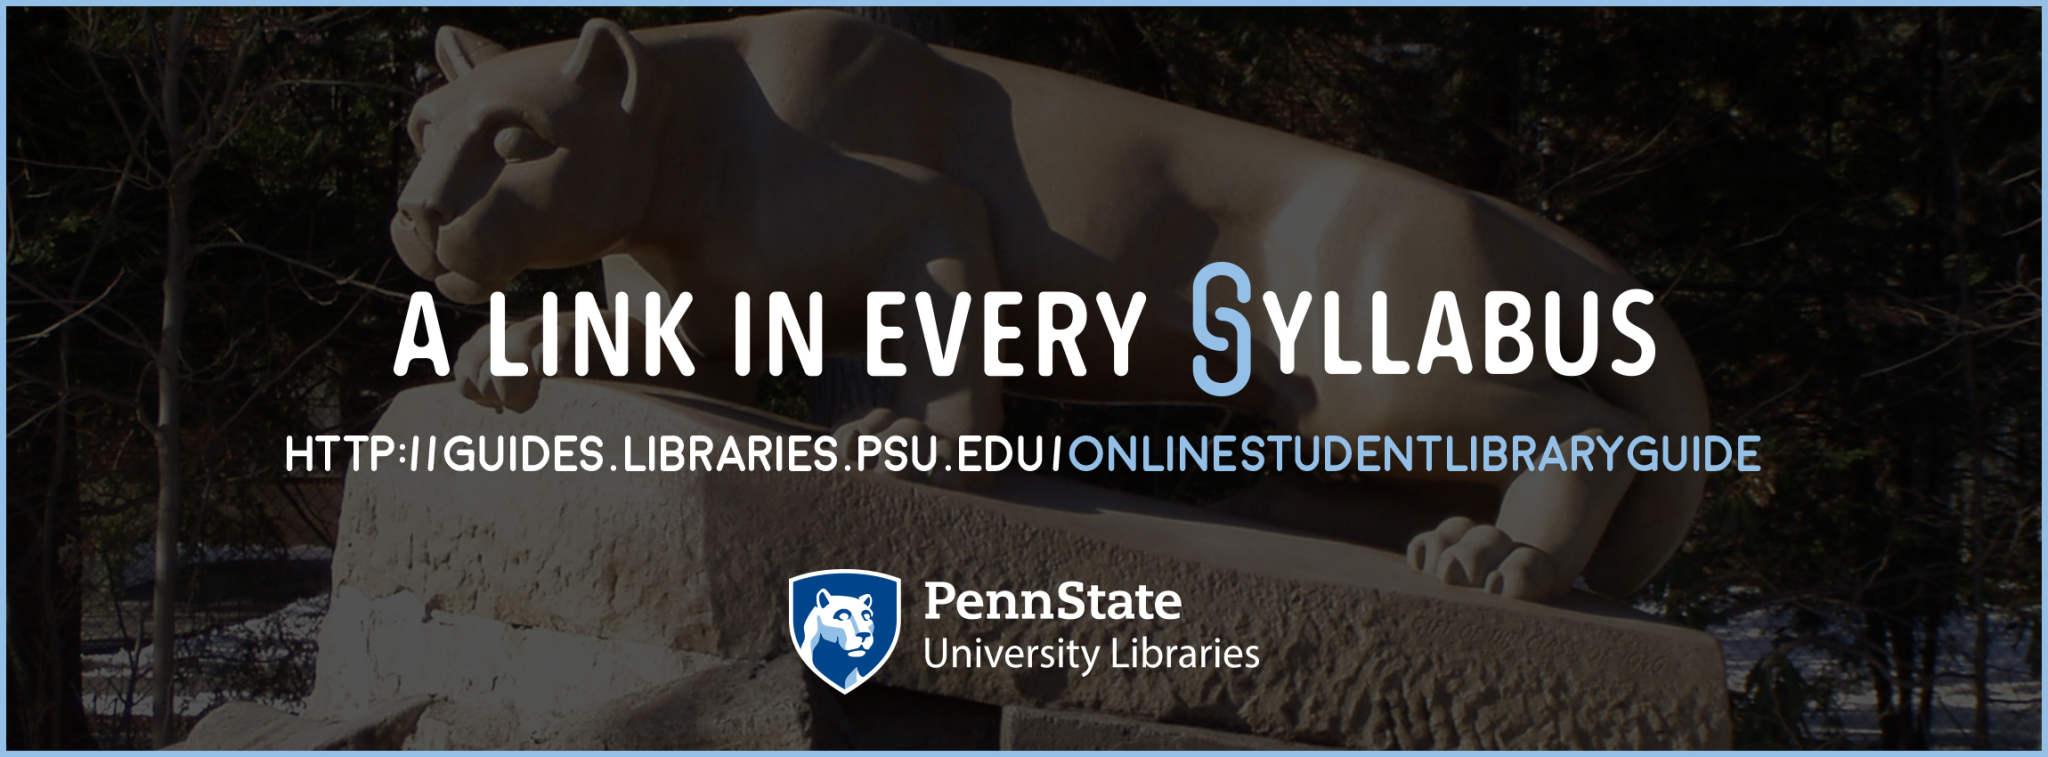 promotional graphic for faculty to include a link to the libraries for students in online learning environments